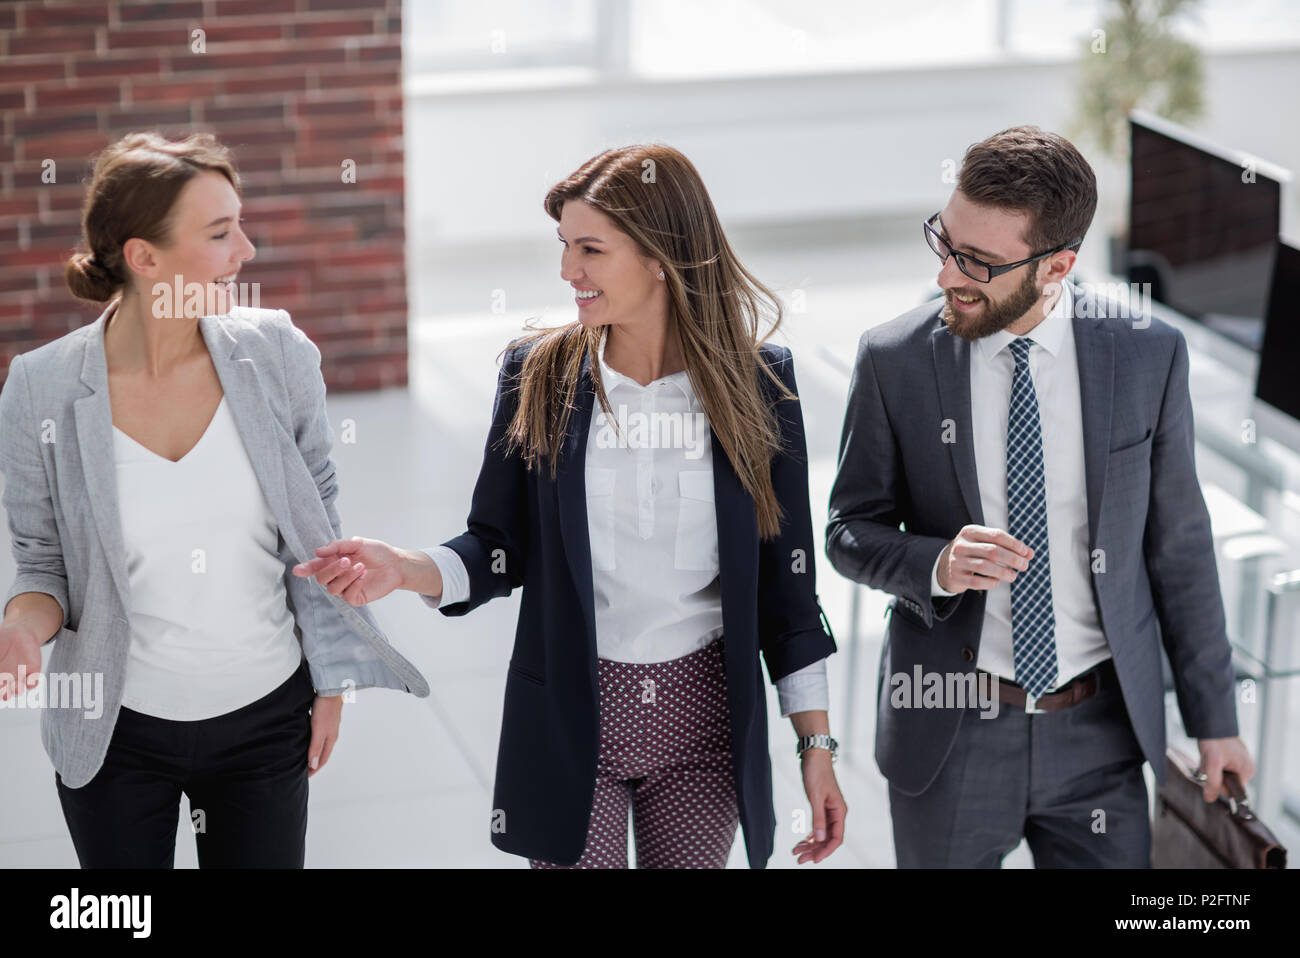 Manager meets customers in the office - Stock Image